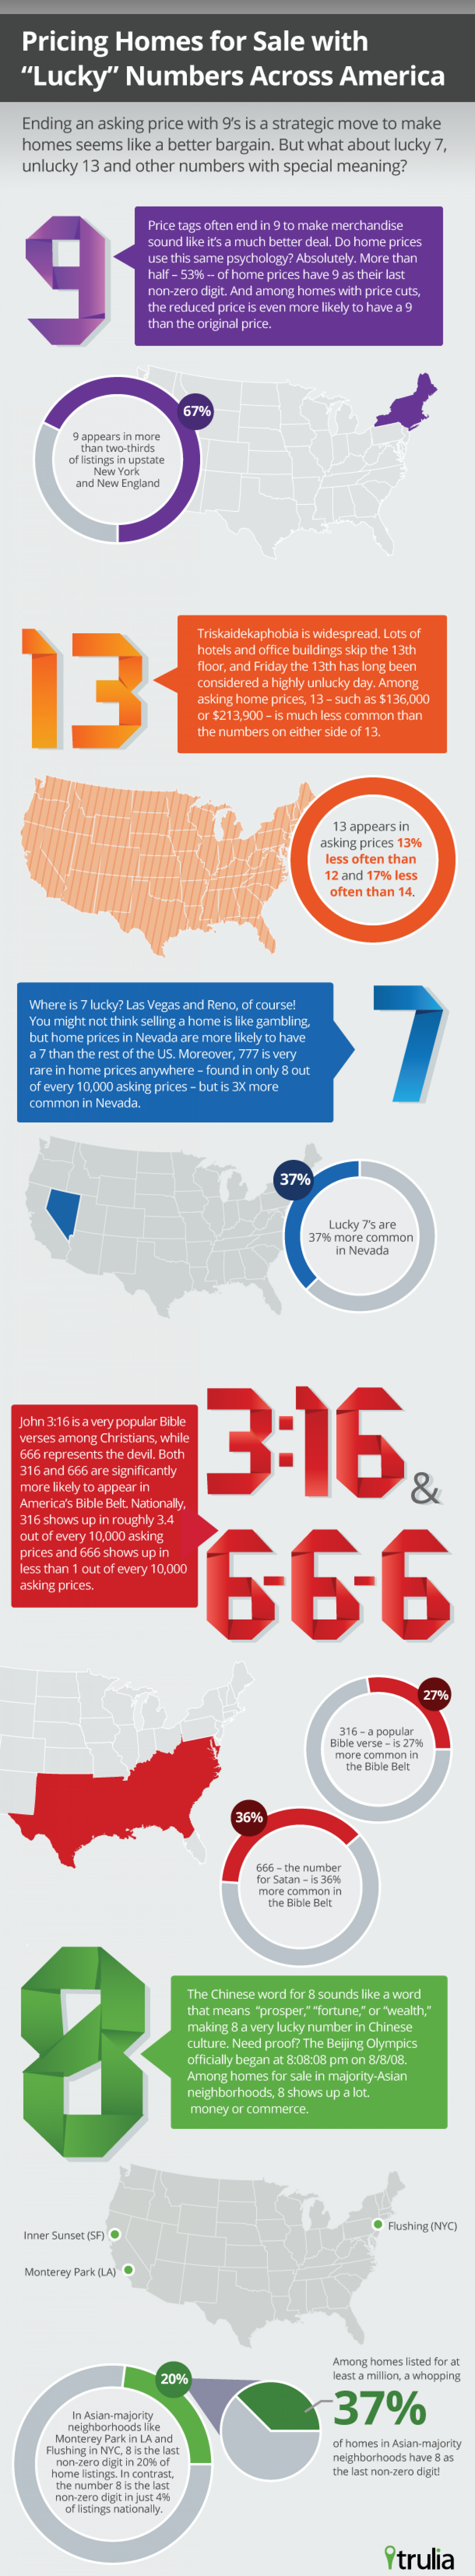 "Pricing Homes for Sale with ""Lucky"" Numbers Across America Infographic"